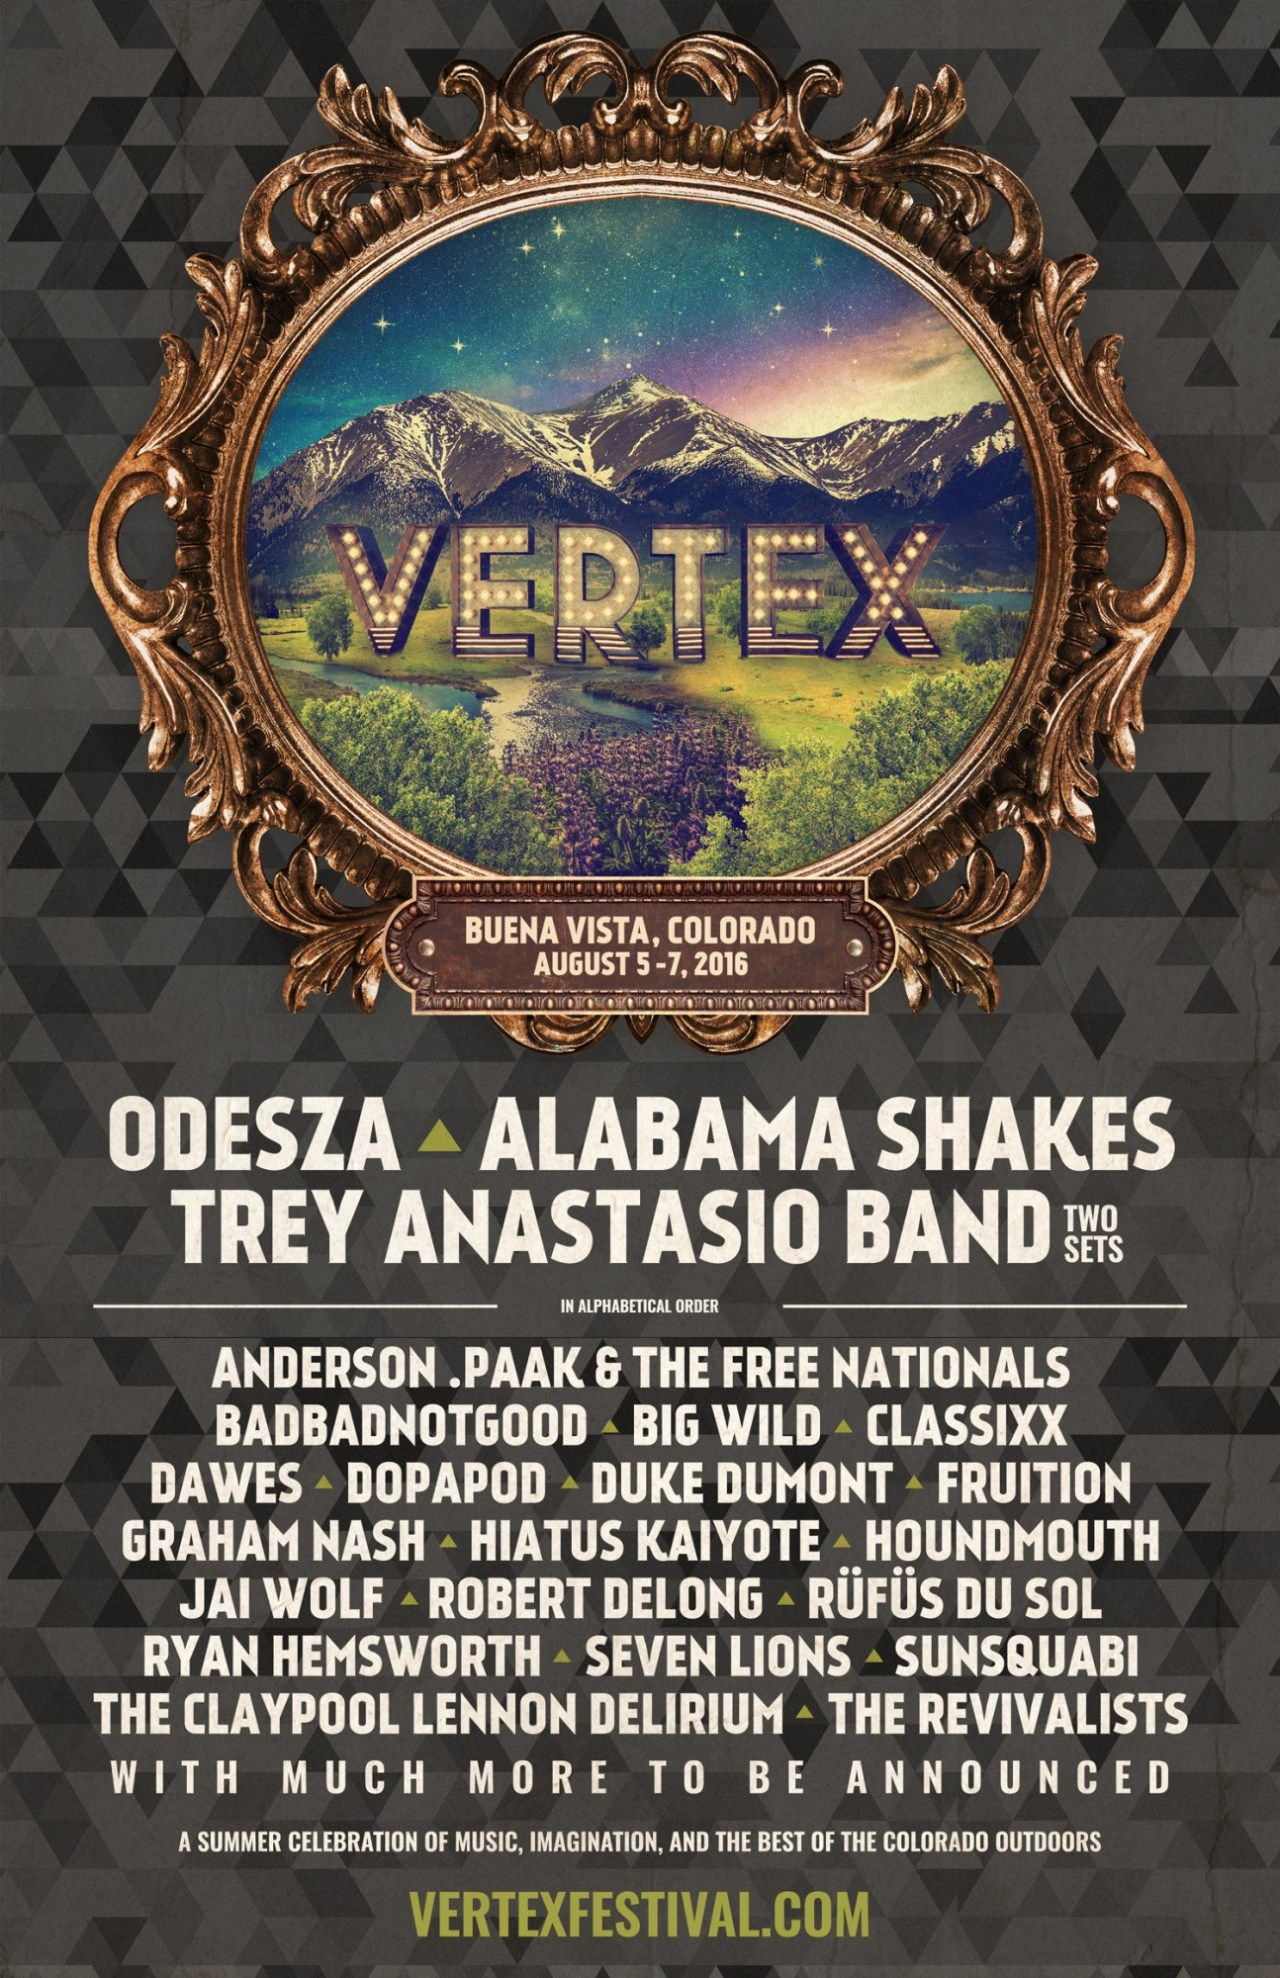 VERTEX Inaugural Music Festival in Buena Vista, Colorado August 5 – 7, 2016 Announces Headliners ODESZA, Alabama Shakes and Trey Anastasio Band